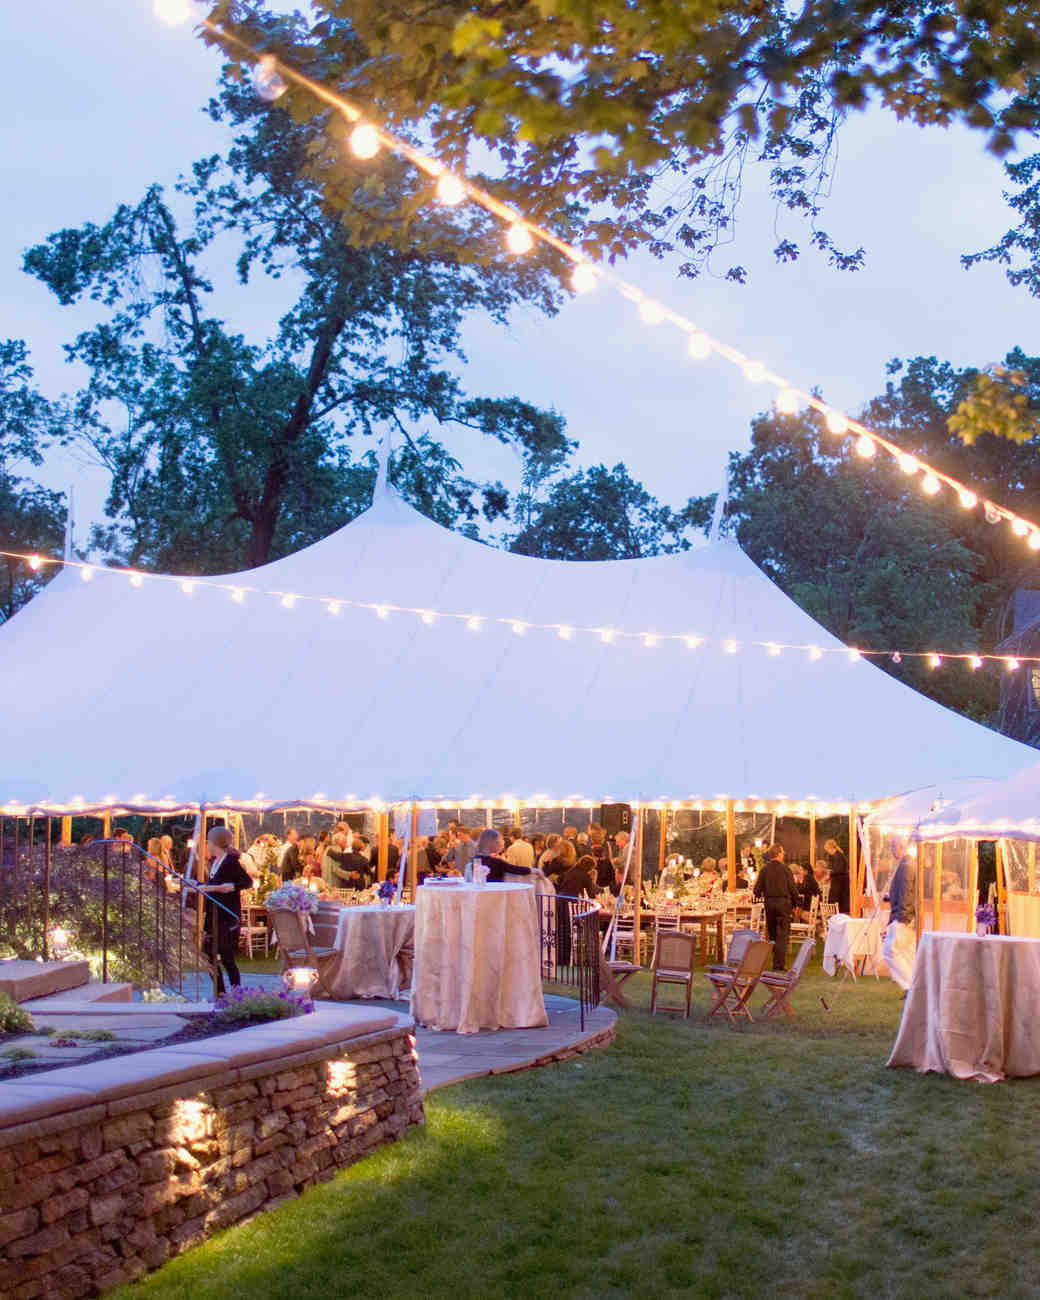 Backyard Wedding Lighting Ideas Outdoor Wedding Lighting Ideas From ...